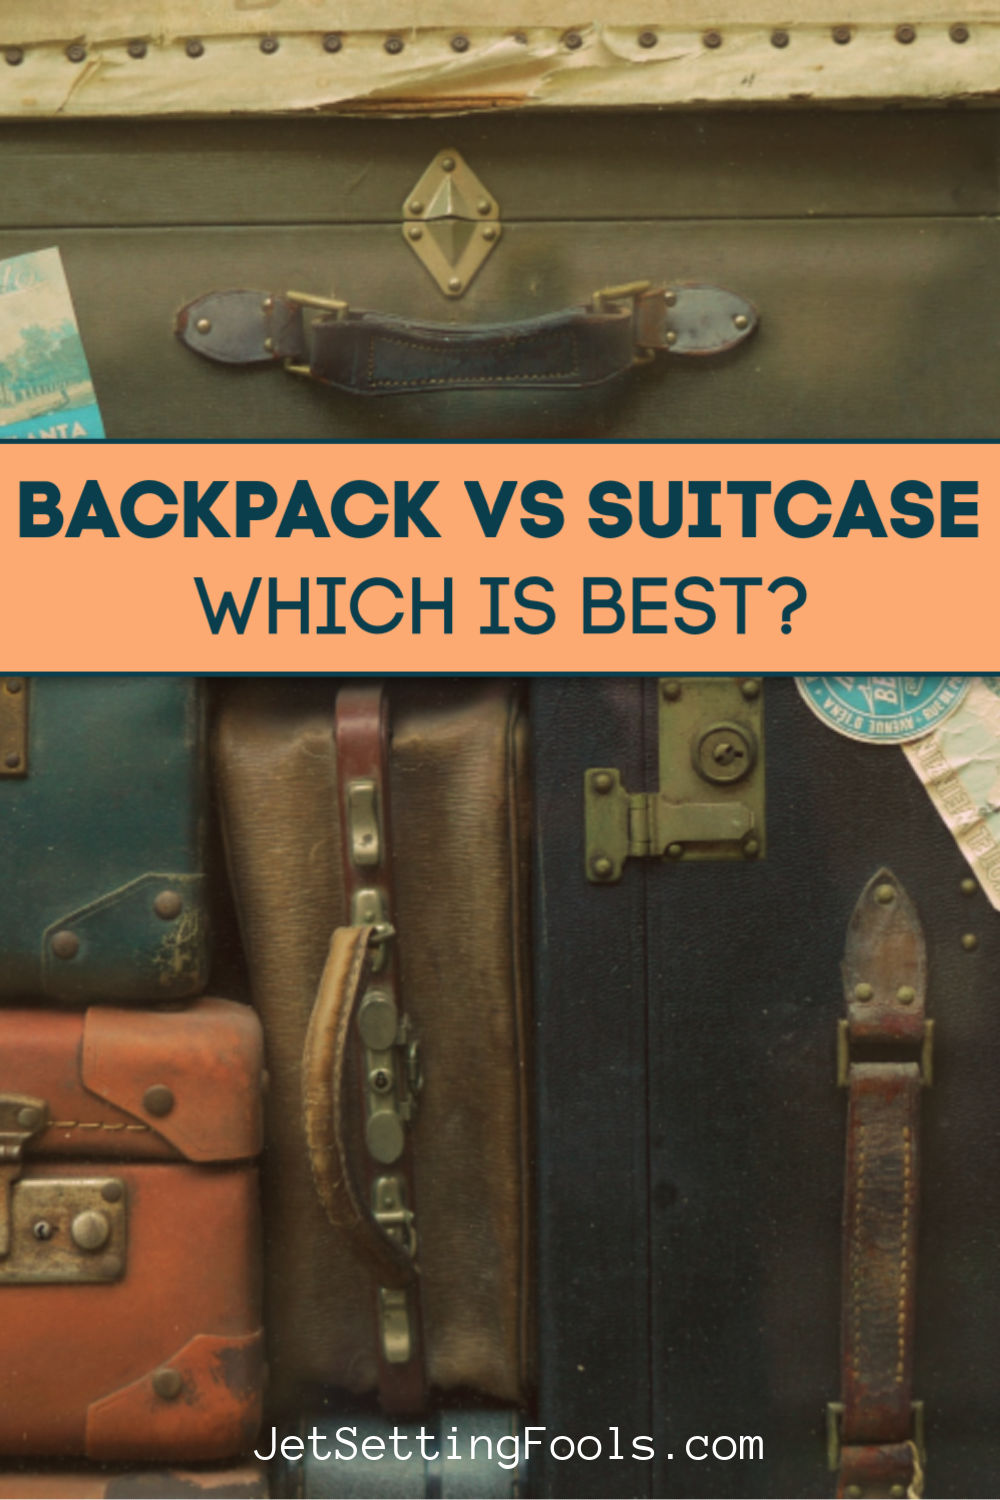 Backpack vs Suitcase by JetSettingFools.com